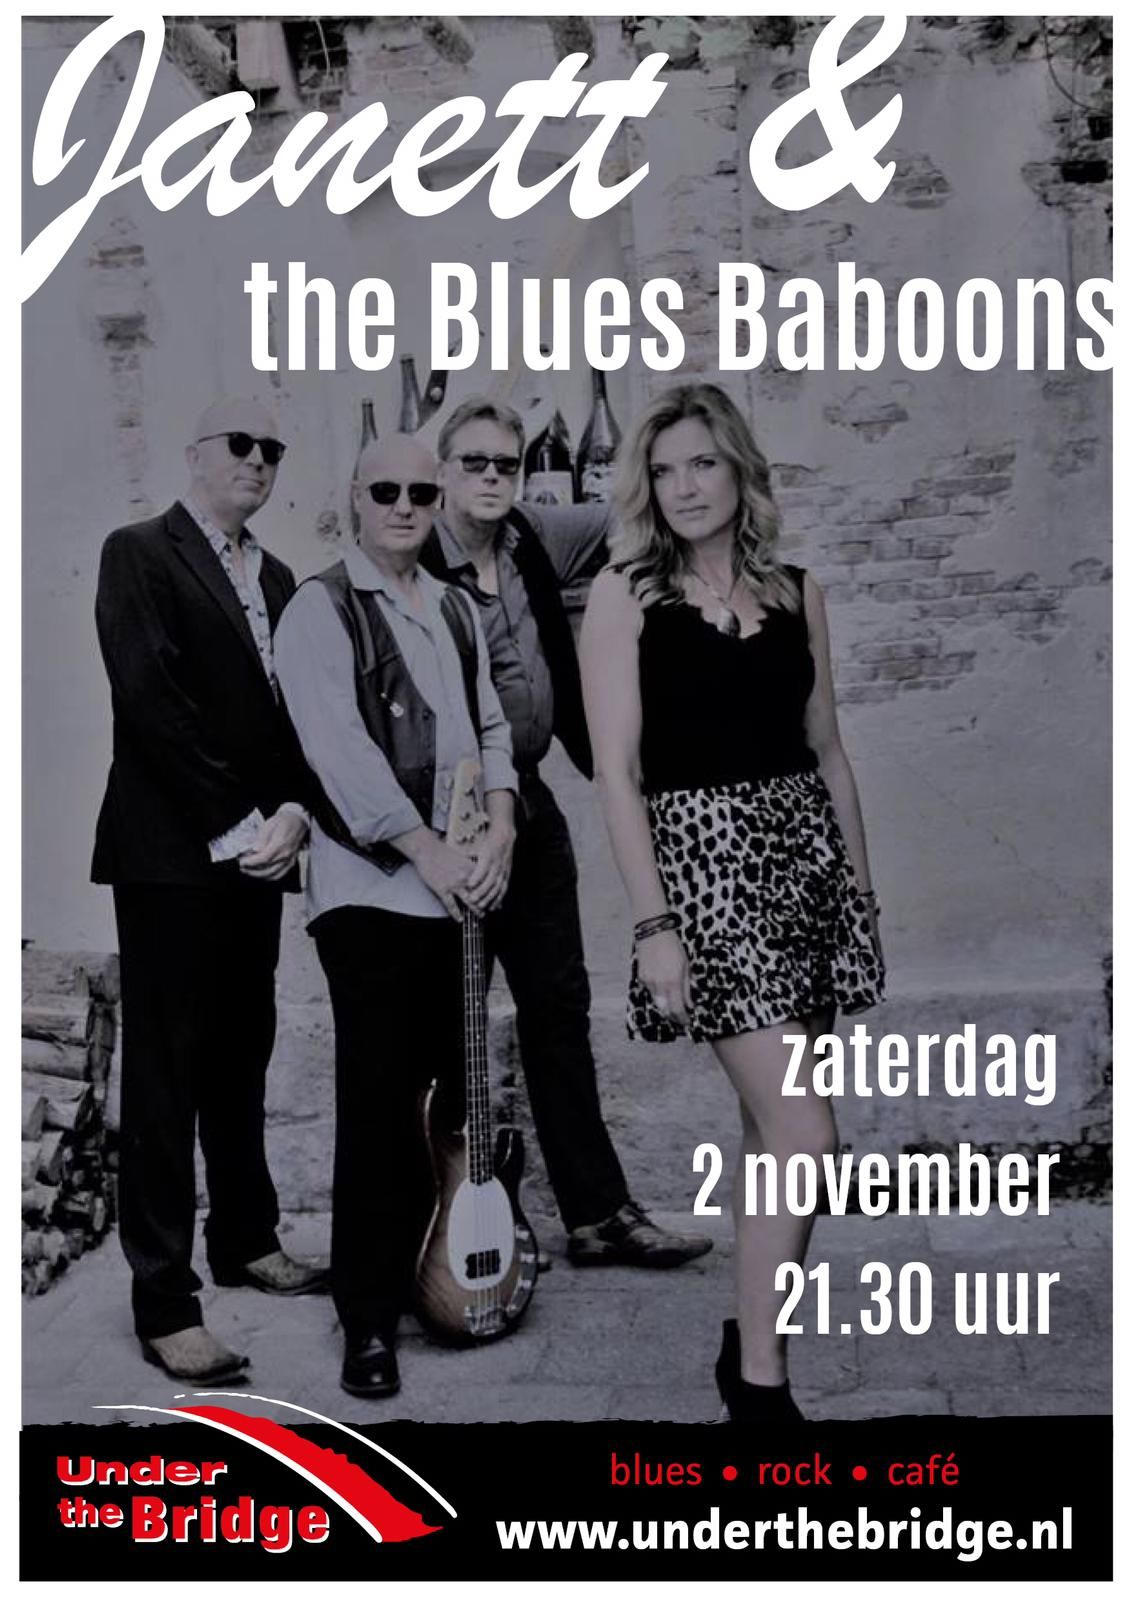 Janett & the Blues Baboons Live in Under the Bridge